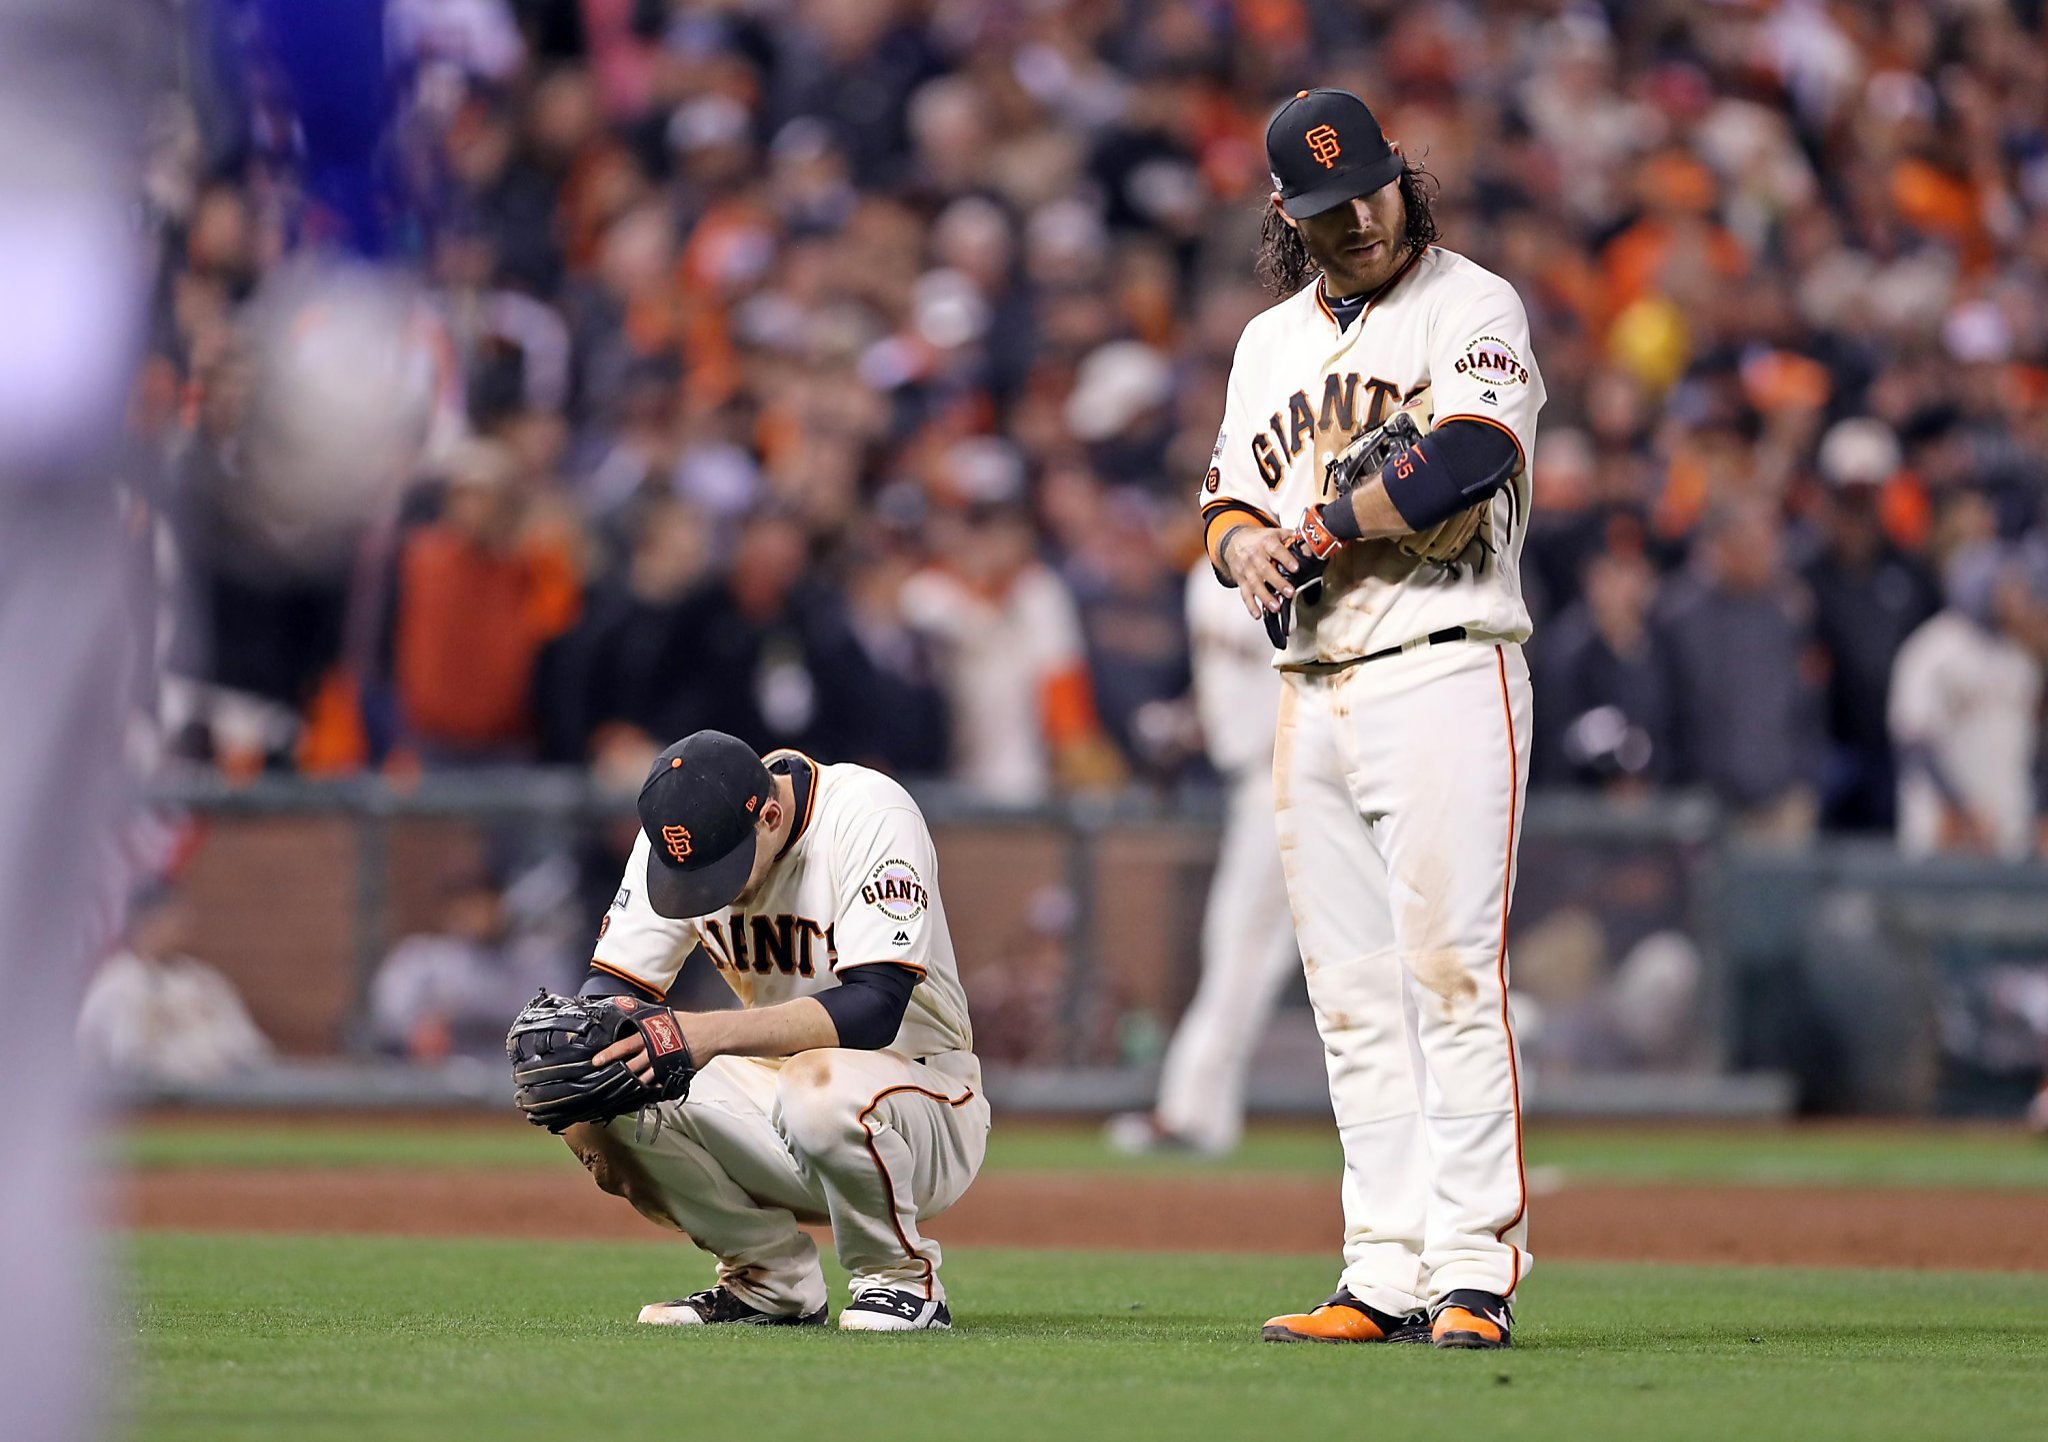 Giants season ends with huge ninth-inning bullpen collapse